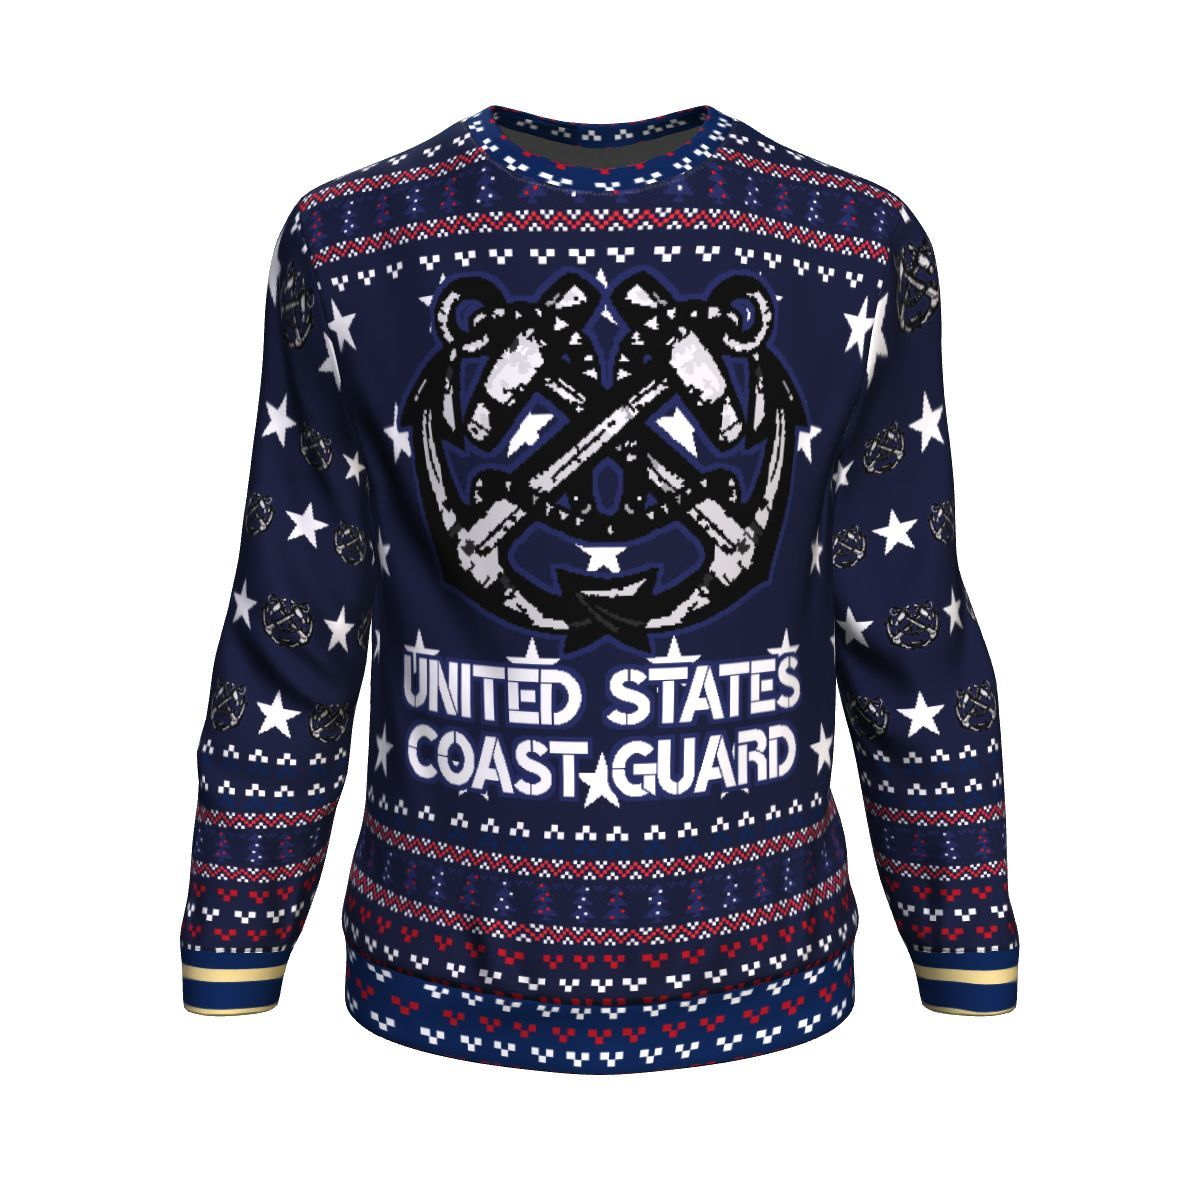 united states coast guard all over printed ugly christmas sweater 2